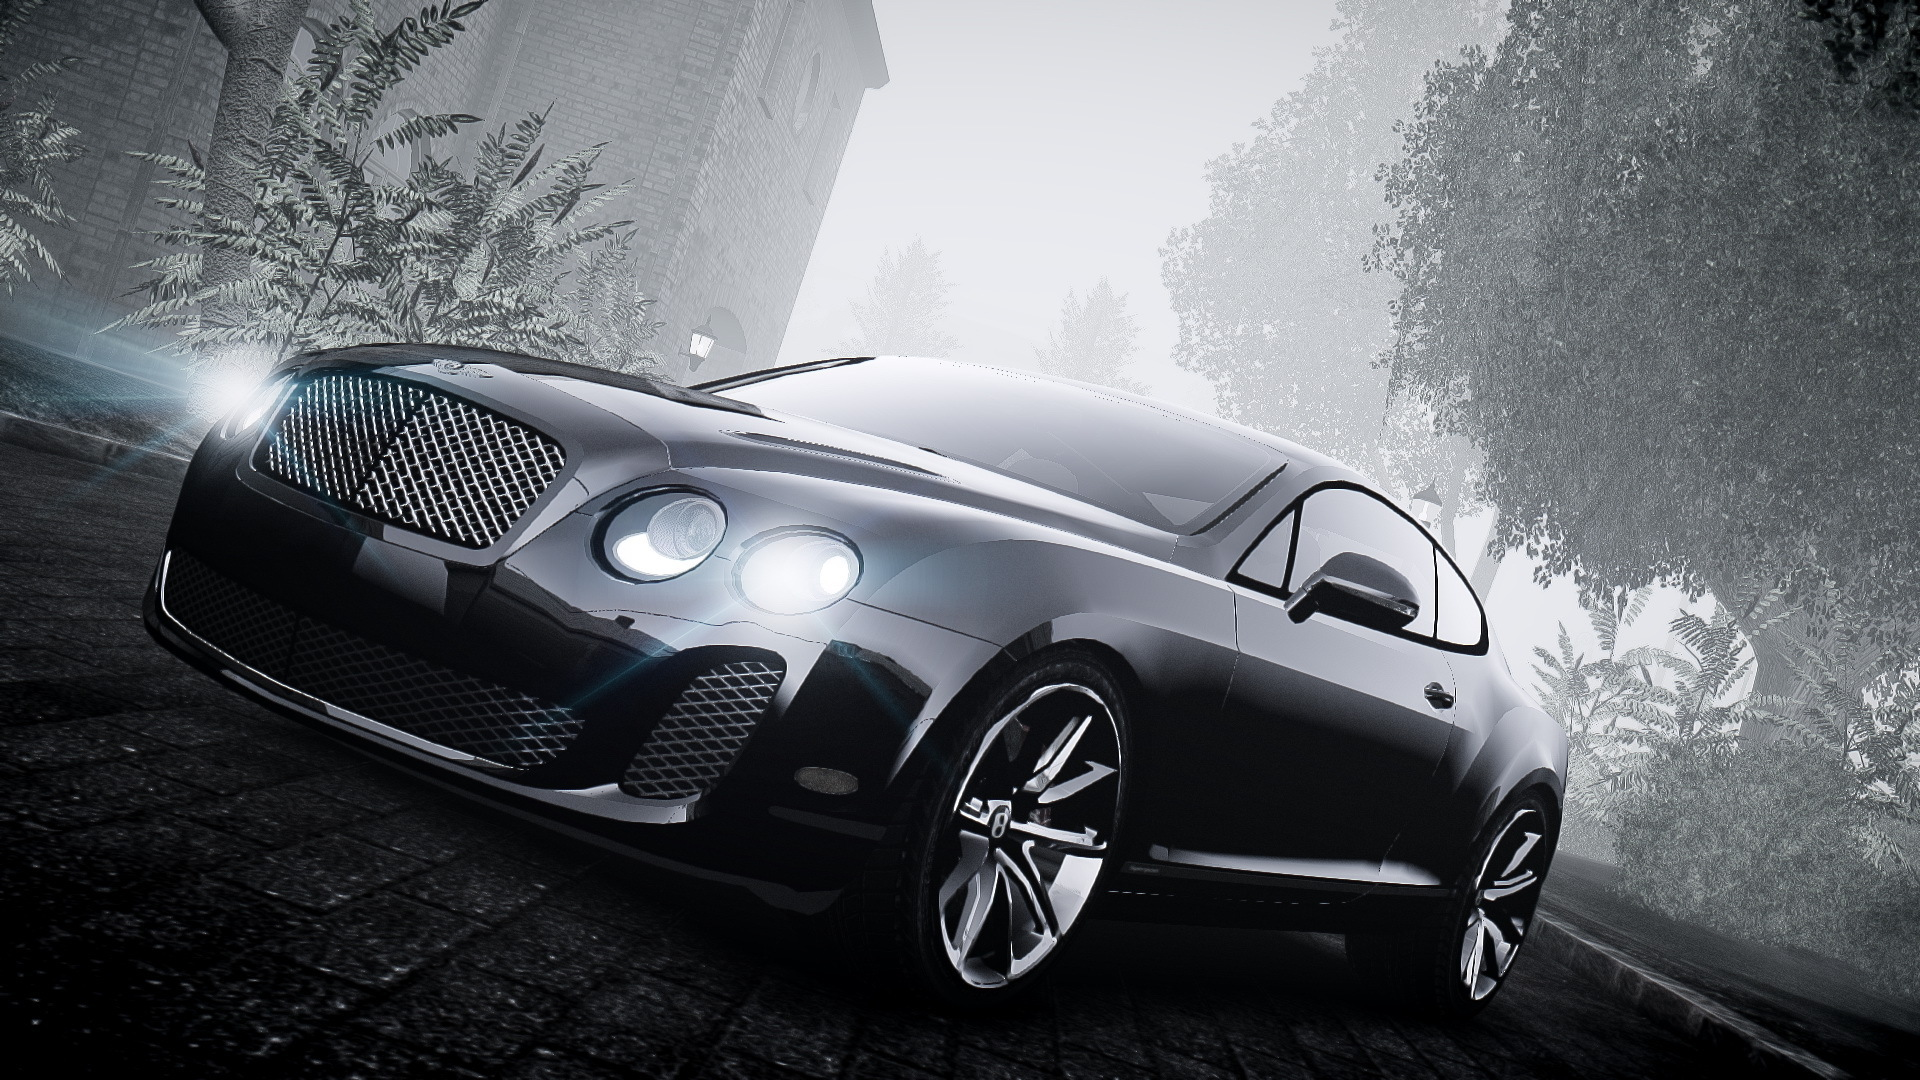 244 bentley hd wallpapers backgrounds wallpaper abyss - Cars hd wallpapers for laptop ...